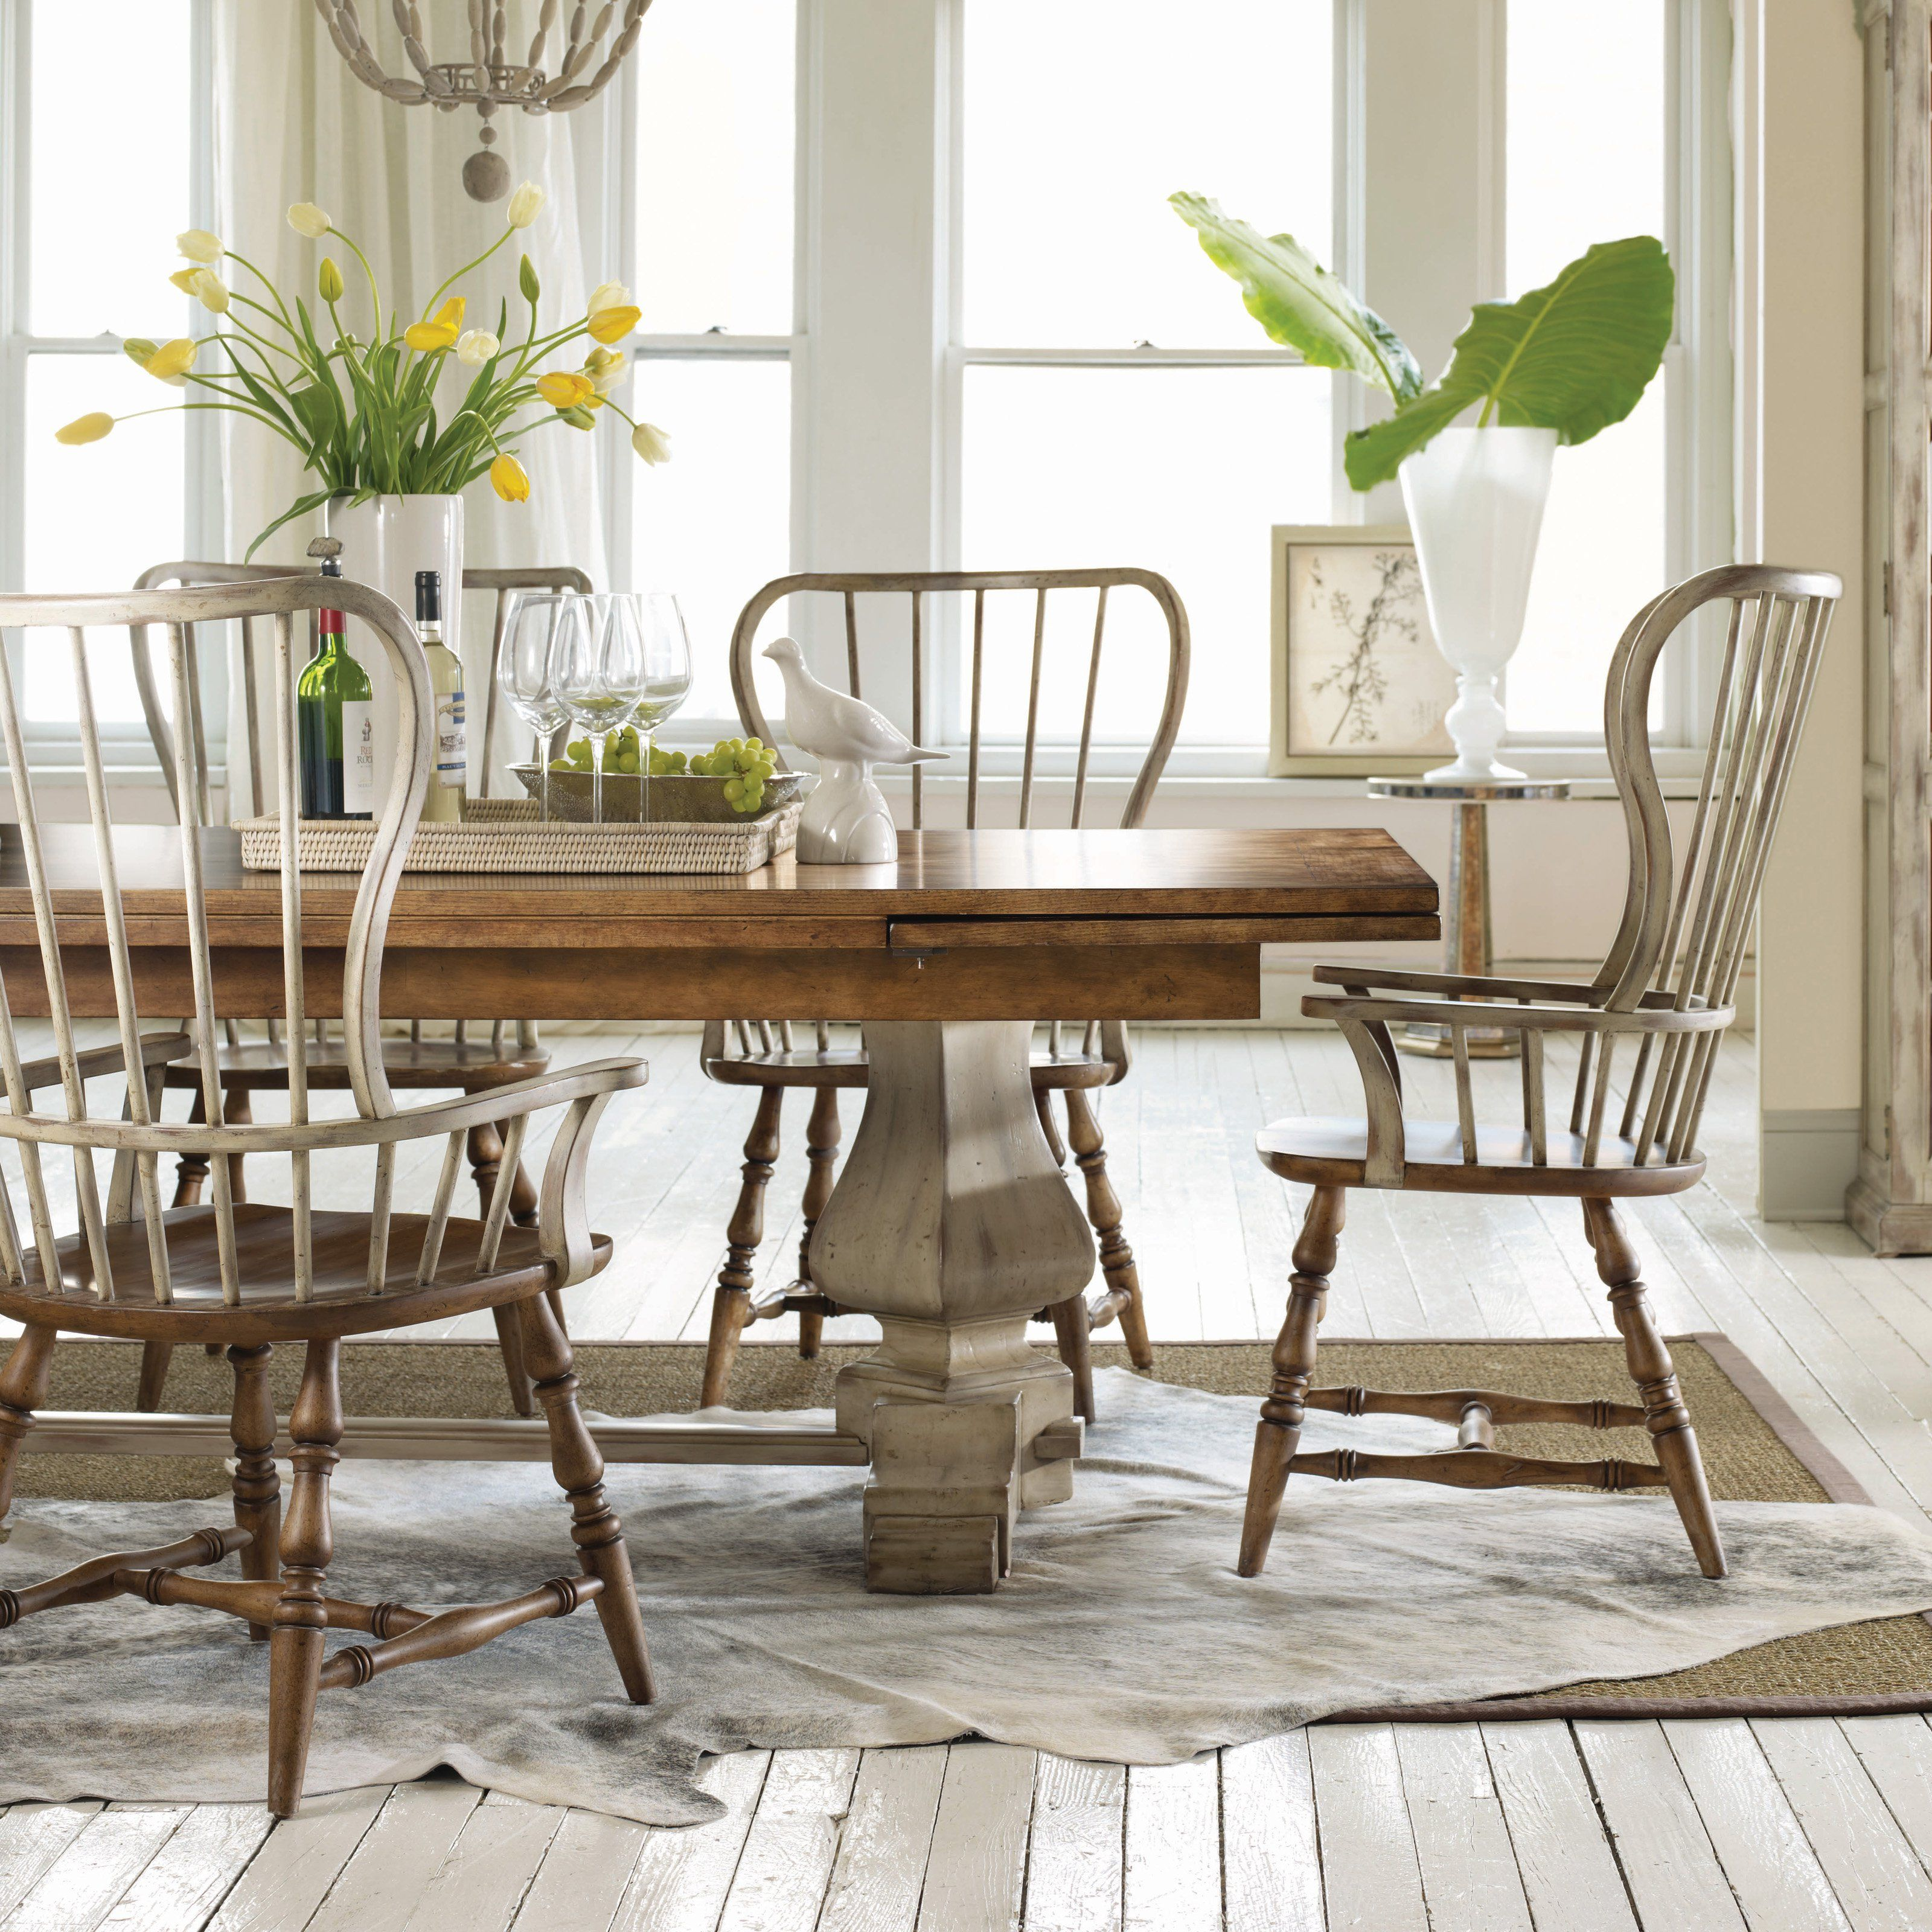 contemporary country furniture. Hooker Furniture Sanctuary 7 Piece Refectory Trestle Dining Set With Spindle Chairs - Add Contemporary Country